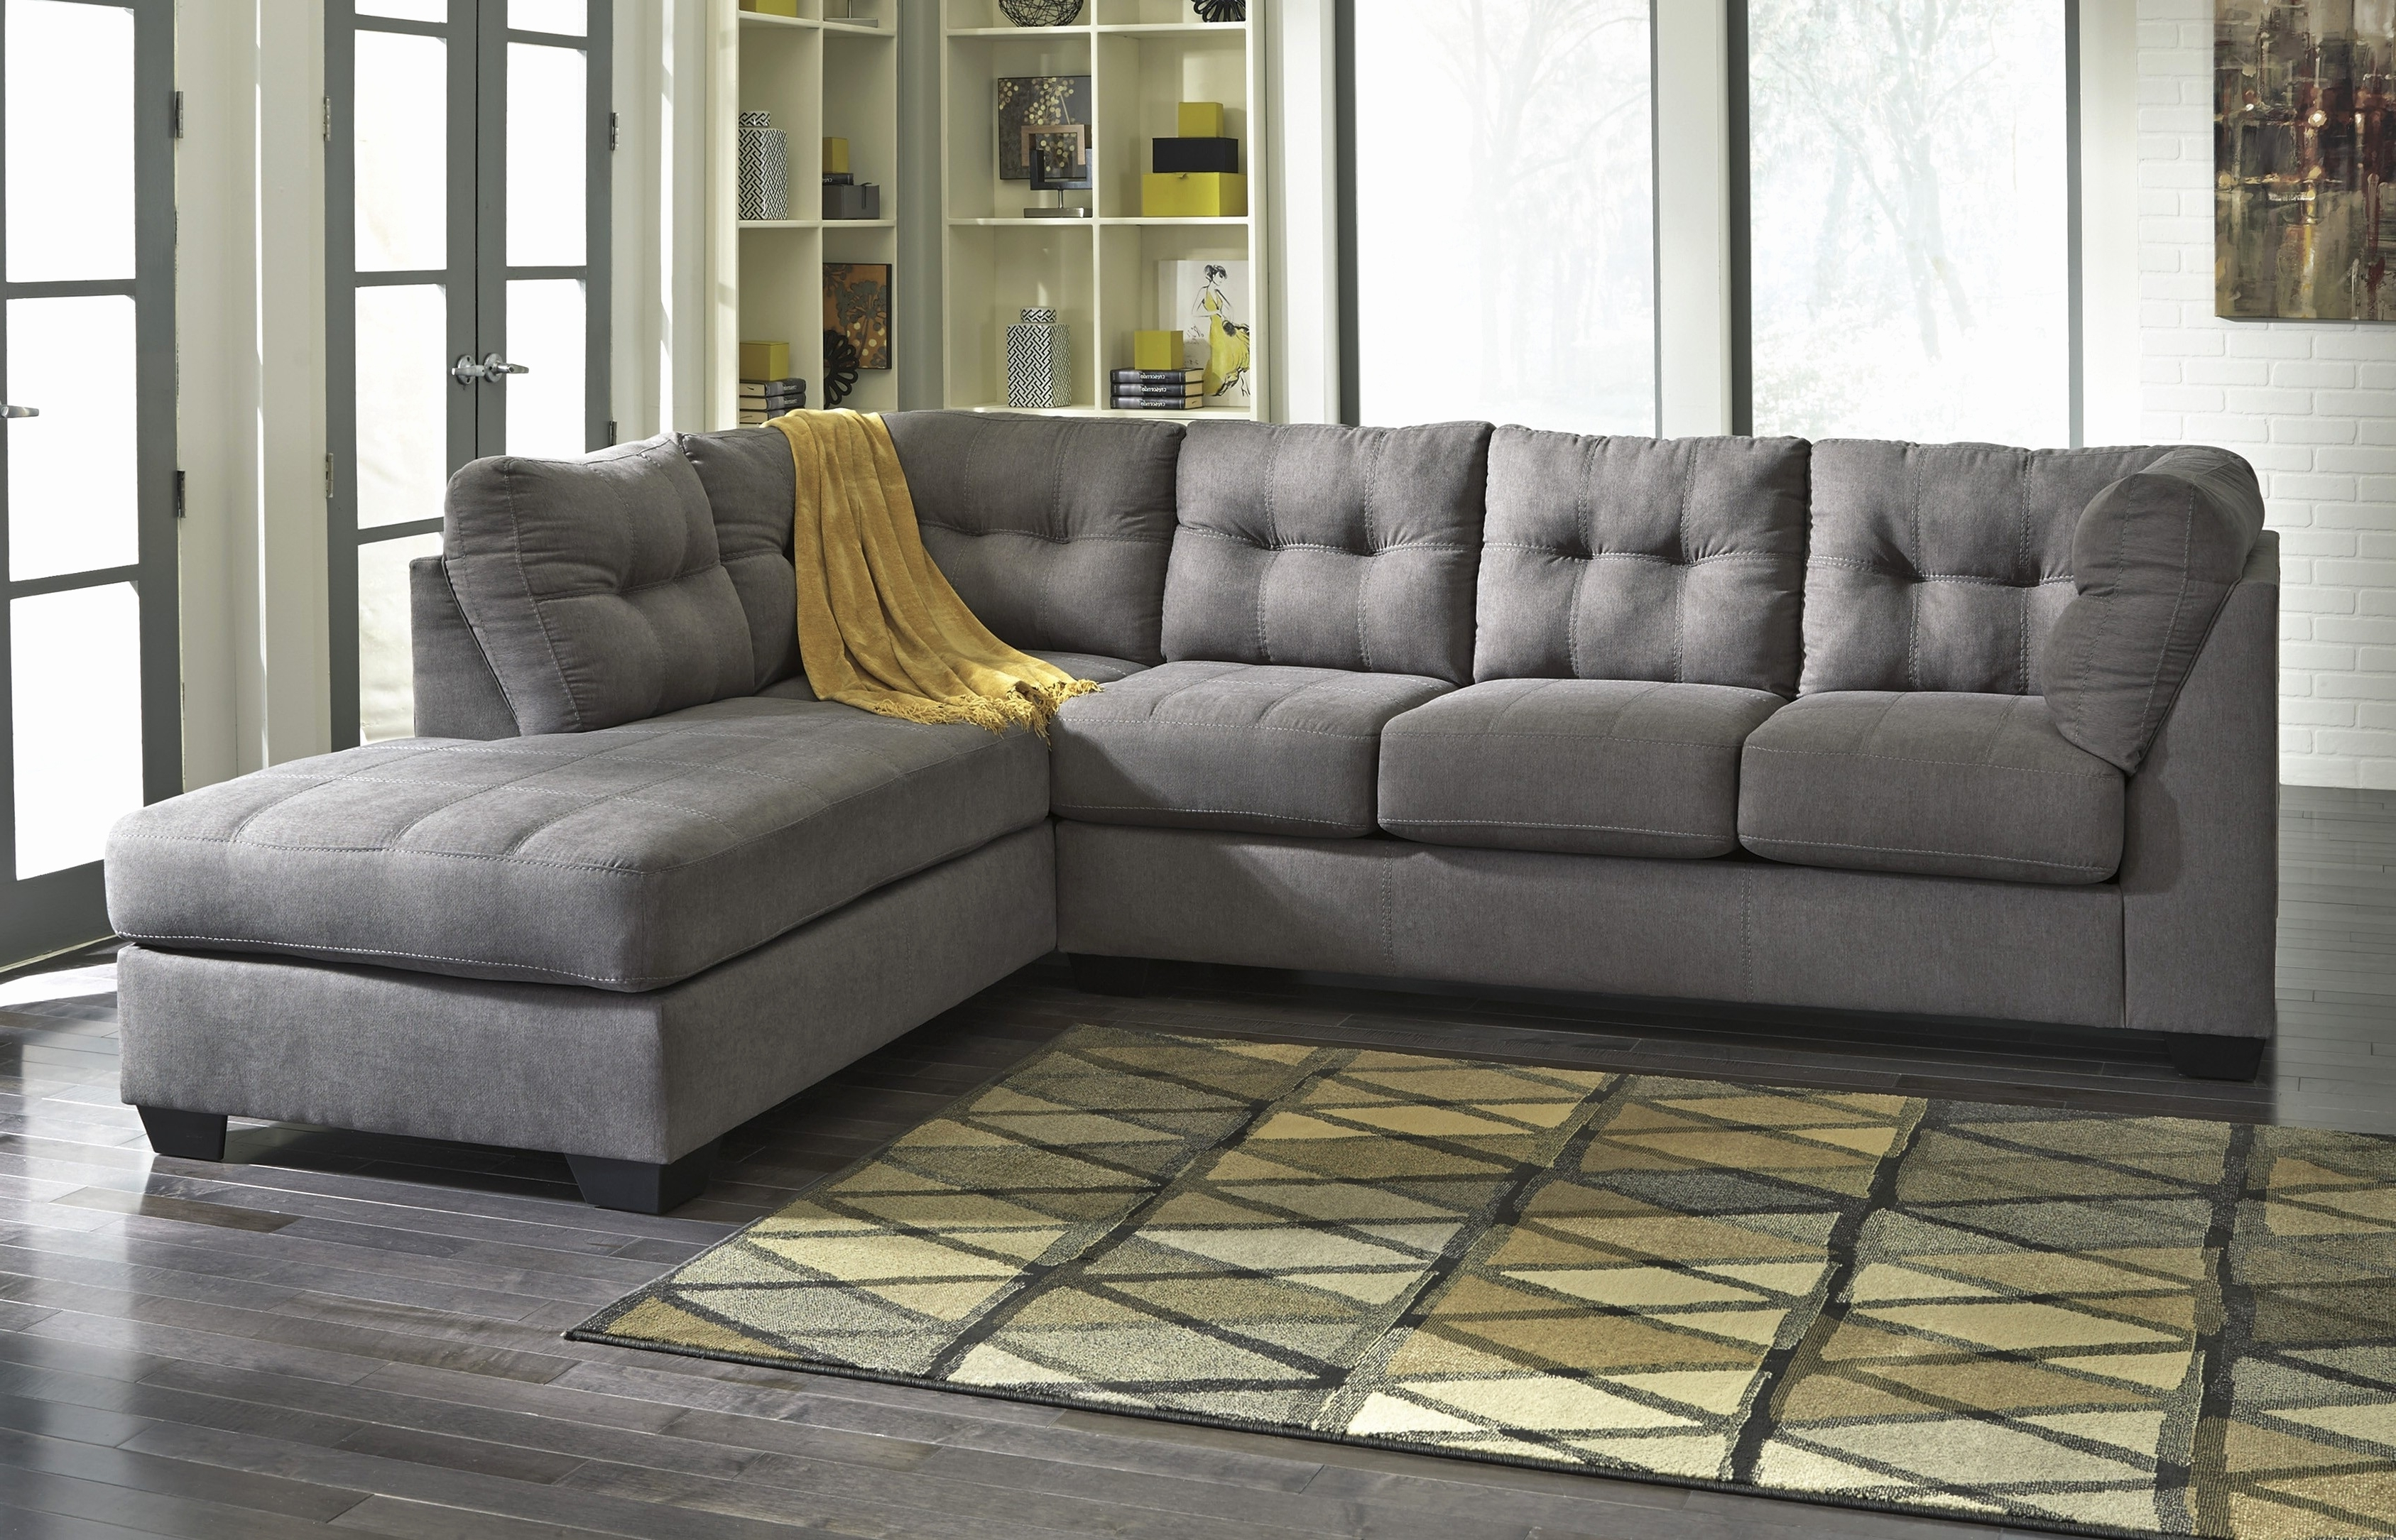 Sectional Sofas At Ashley Furniture Pertaining To Well Known Unique Sleeper Sofa 2018